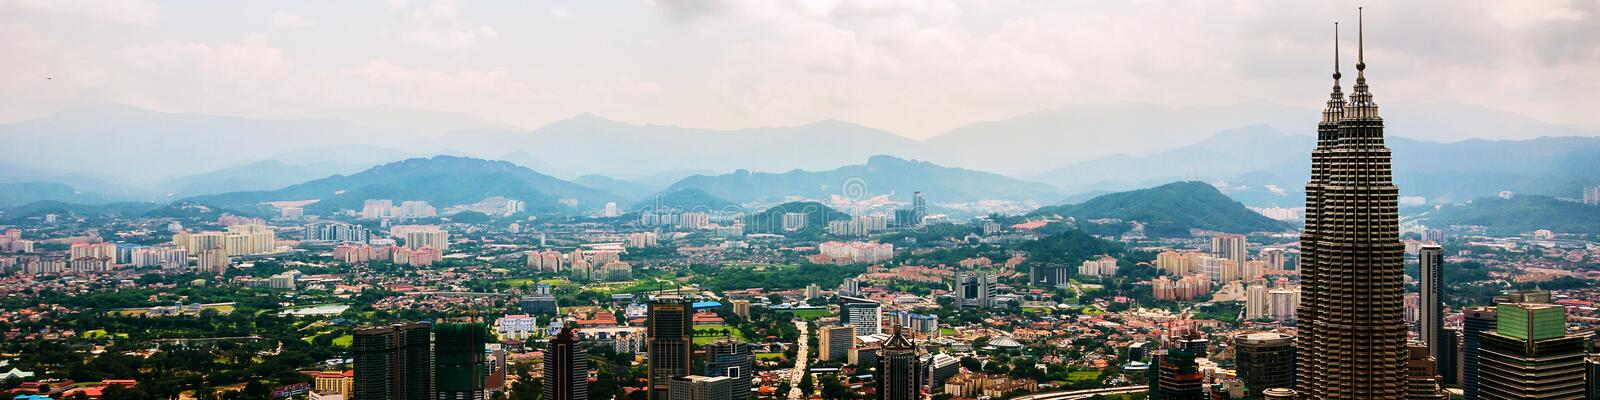 Cityscape of the famous city Kuala Lumpur in Malaysia, Asia royalty free stock images